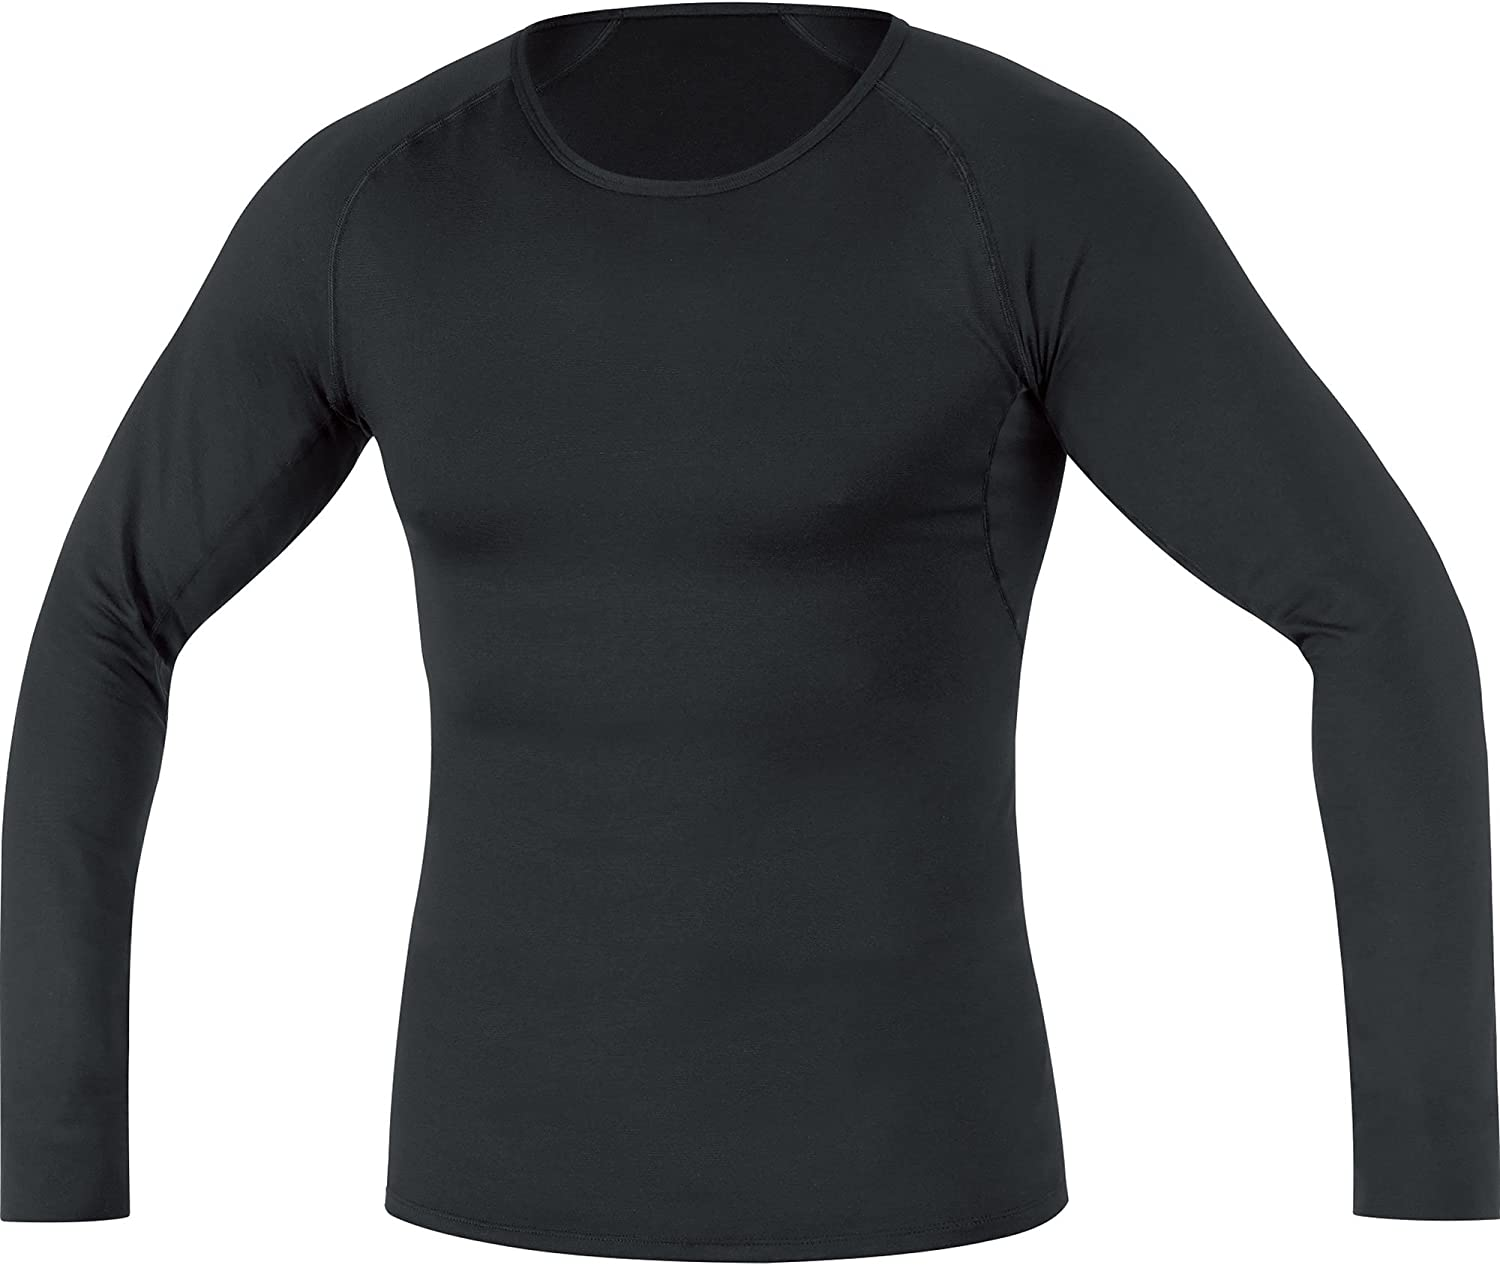 GORE WEAR Breathable Men's Thermal Inner Layer Shirt